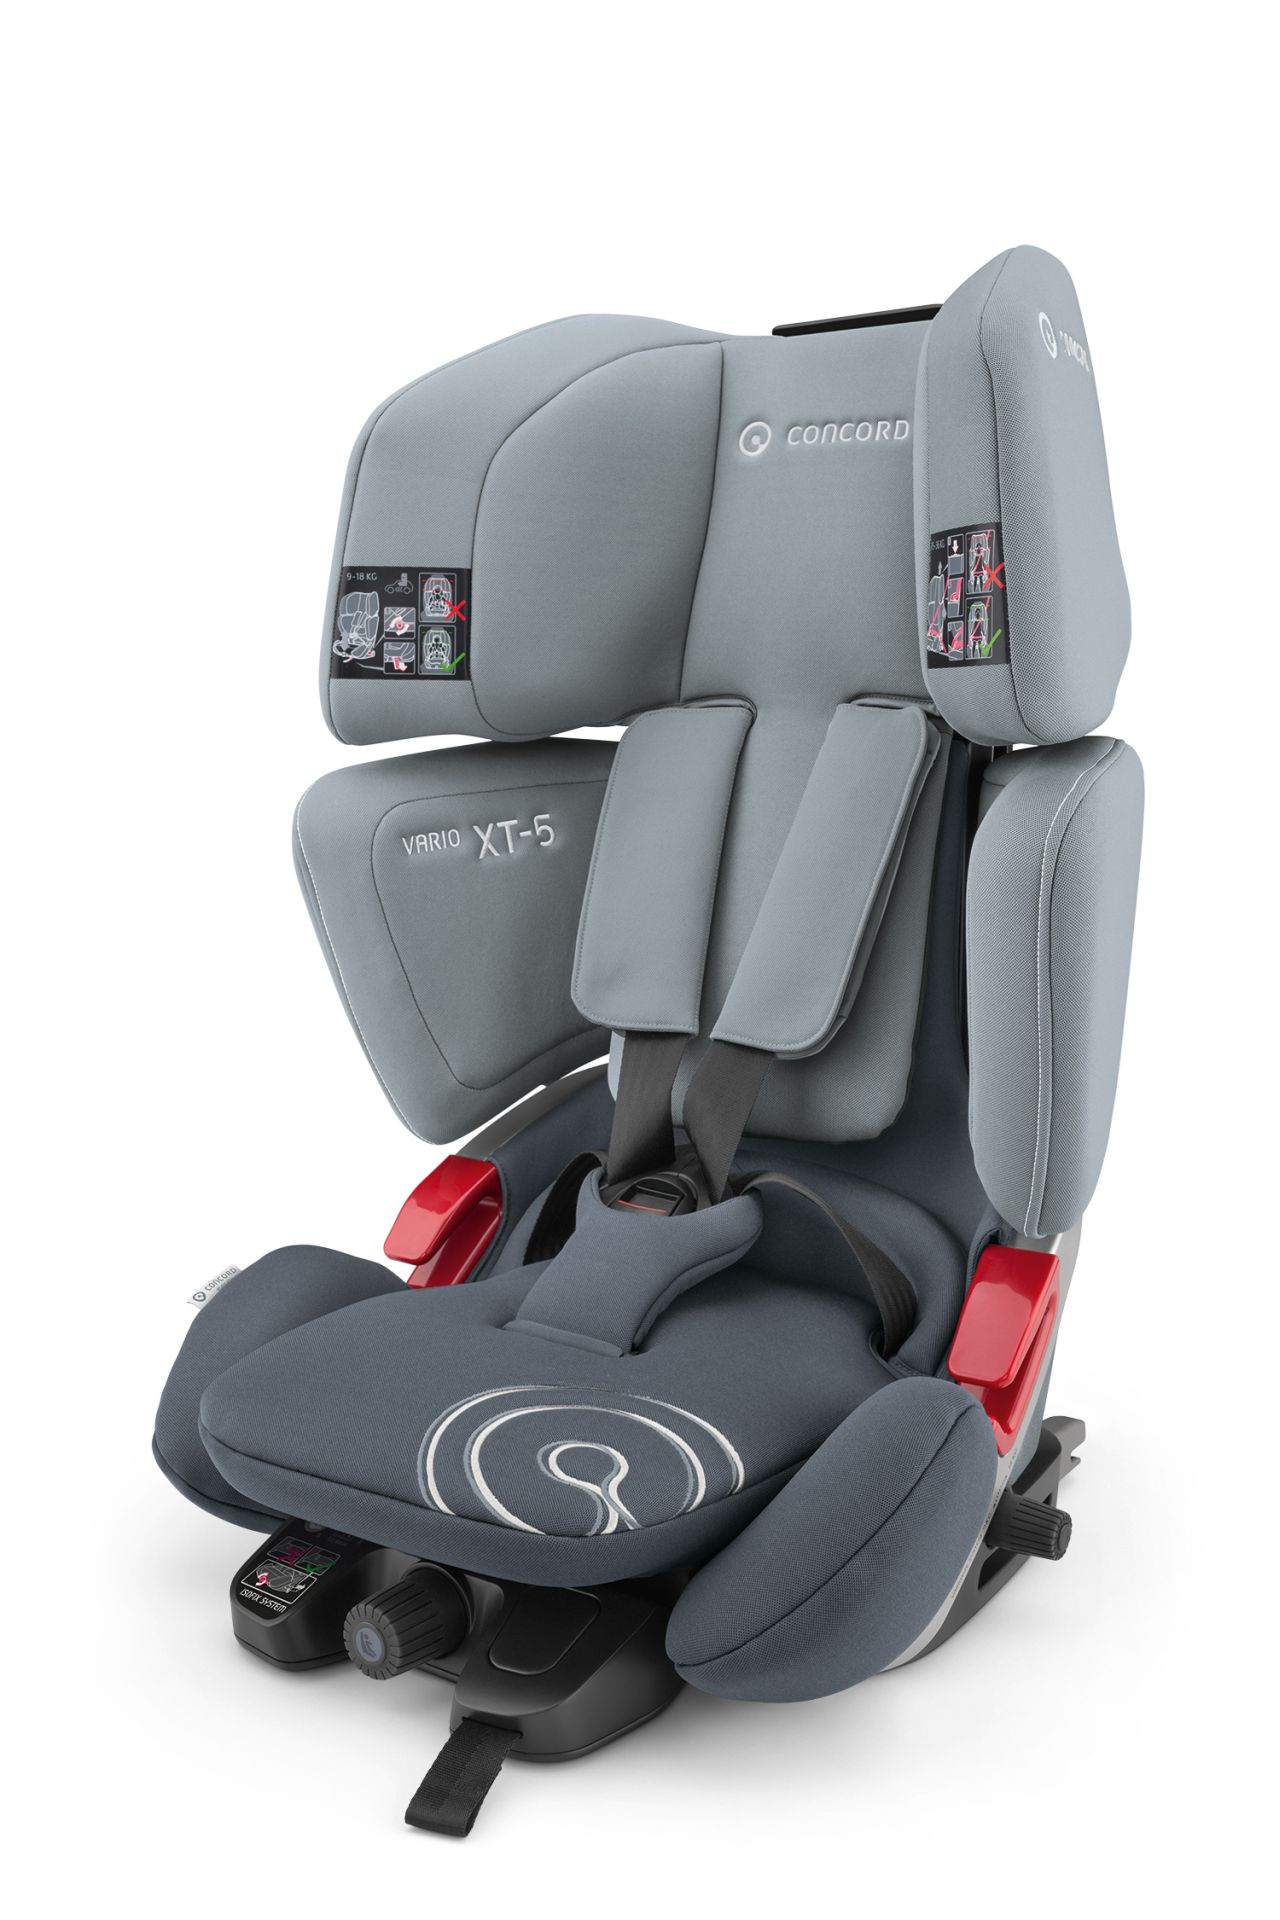 Concord baby car seats: model overview, features and reviews 23